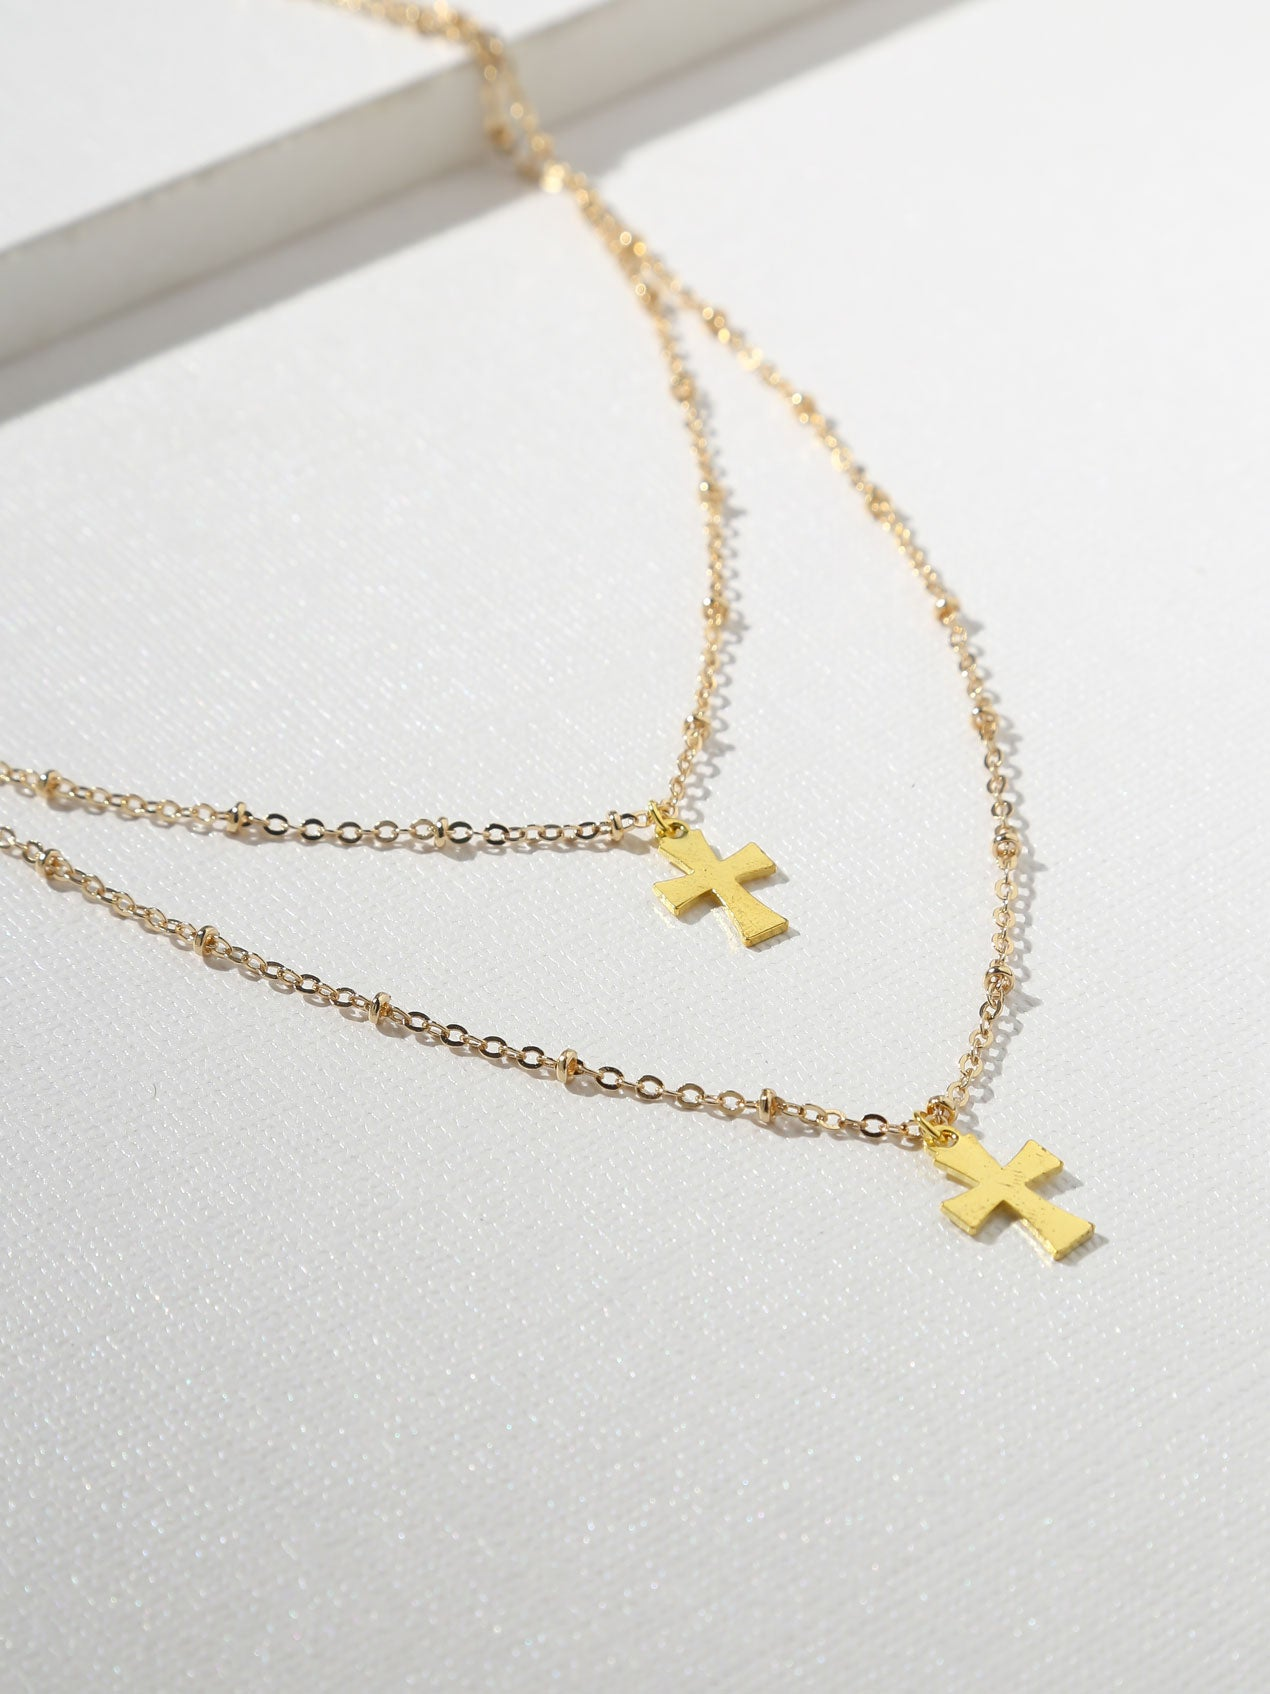 The Gabriella Double Cross Necklace